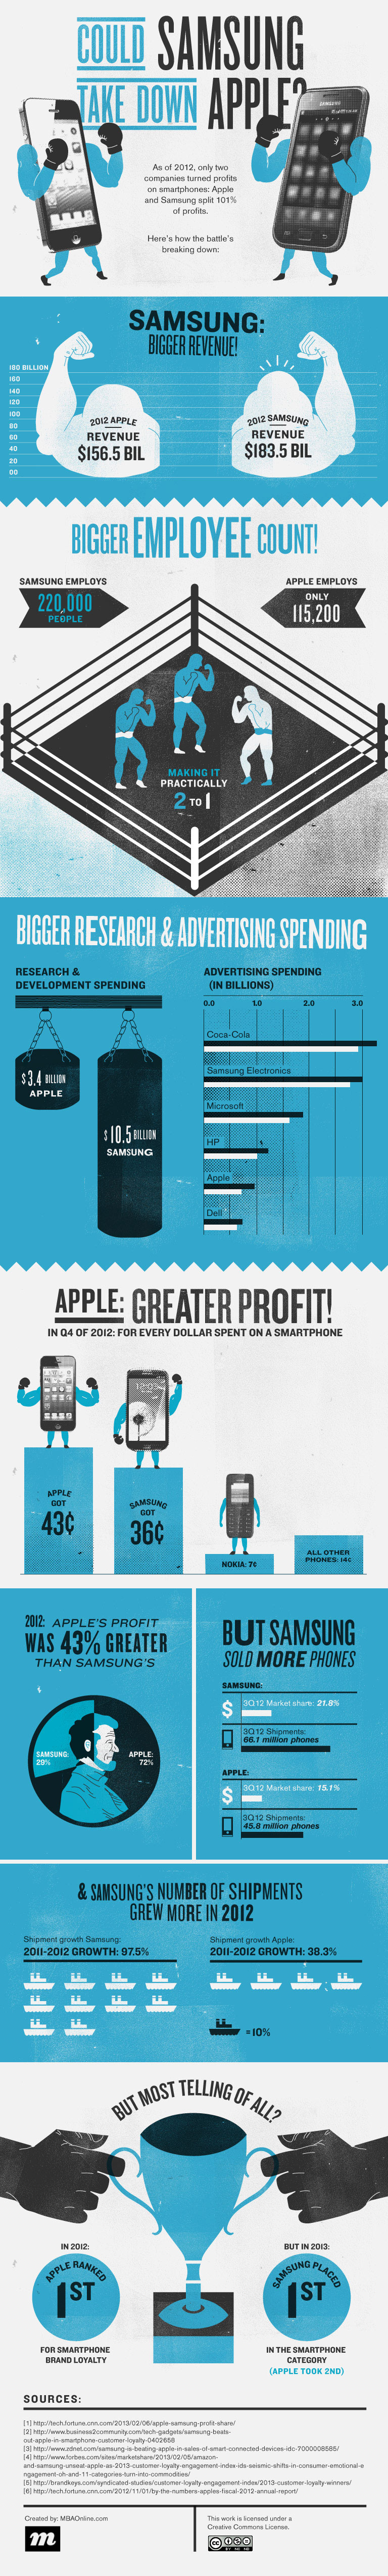 Samsung Apple Clash-Infographic